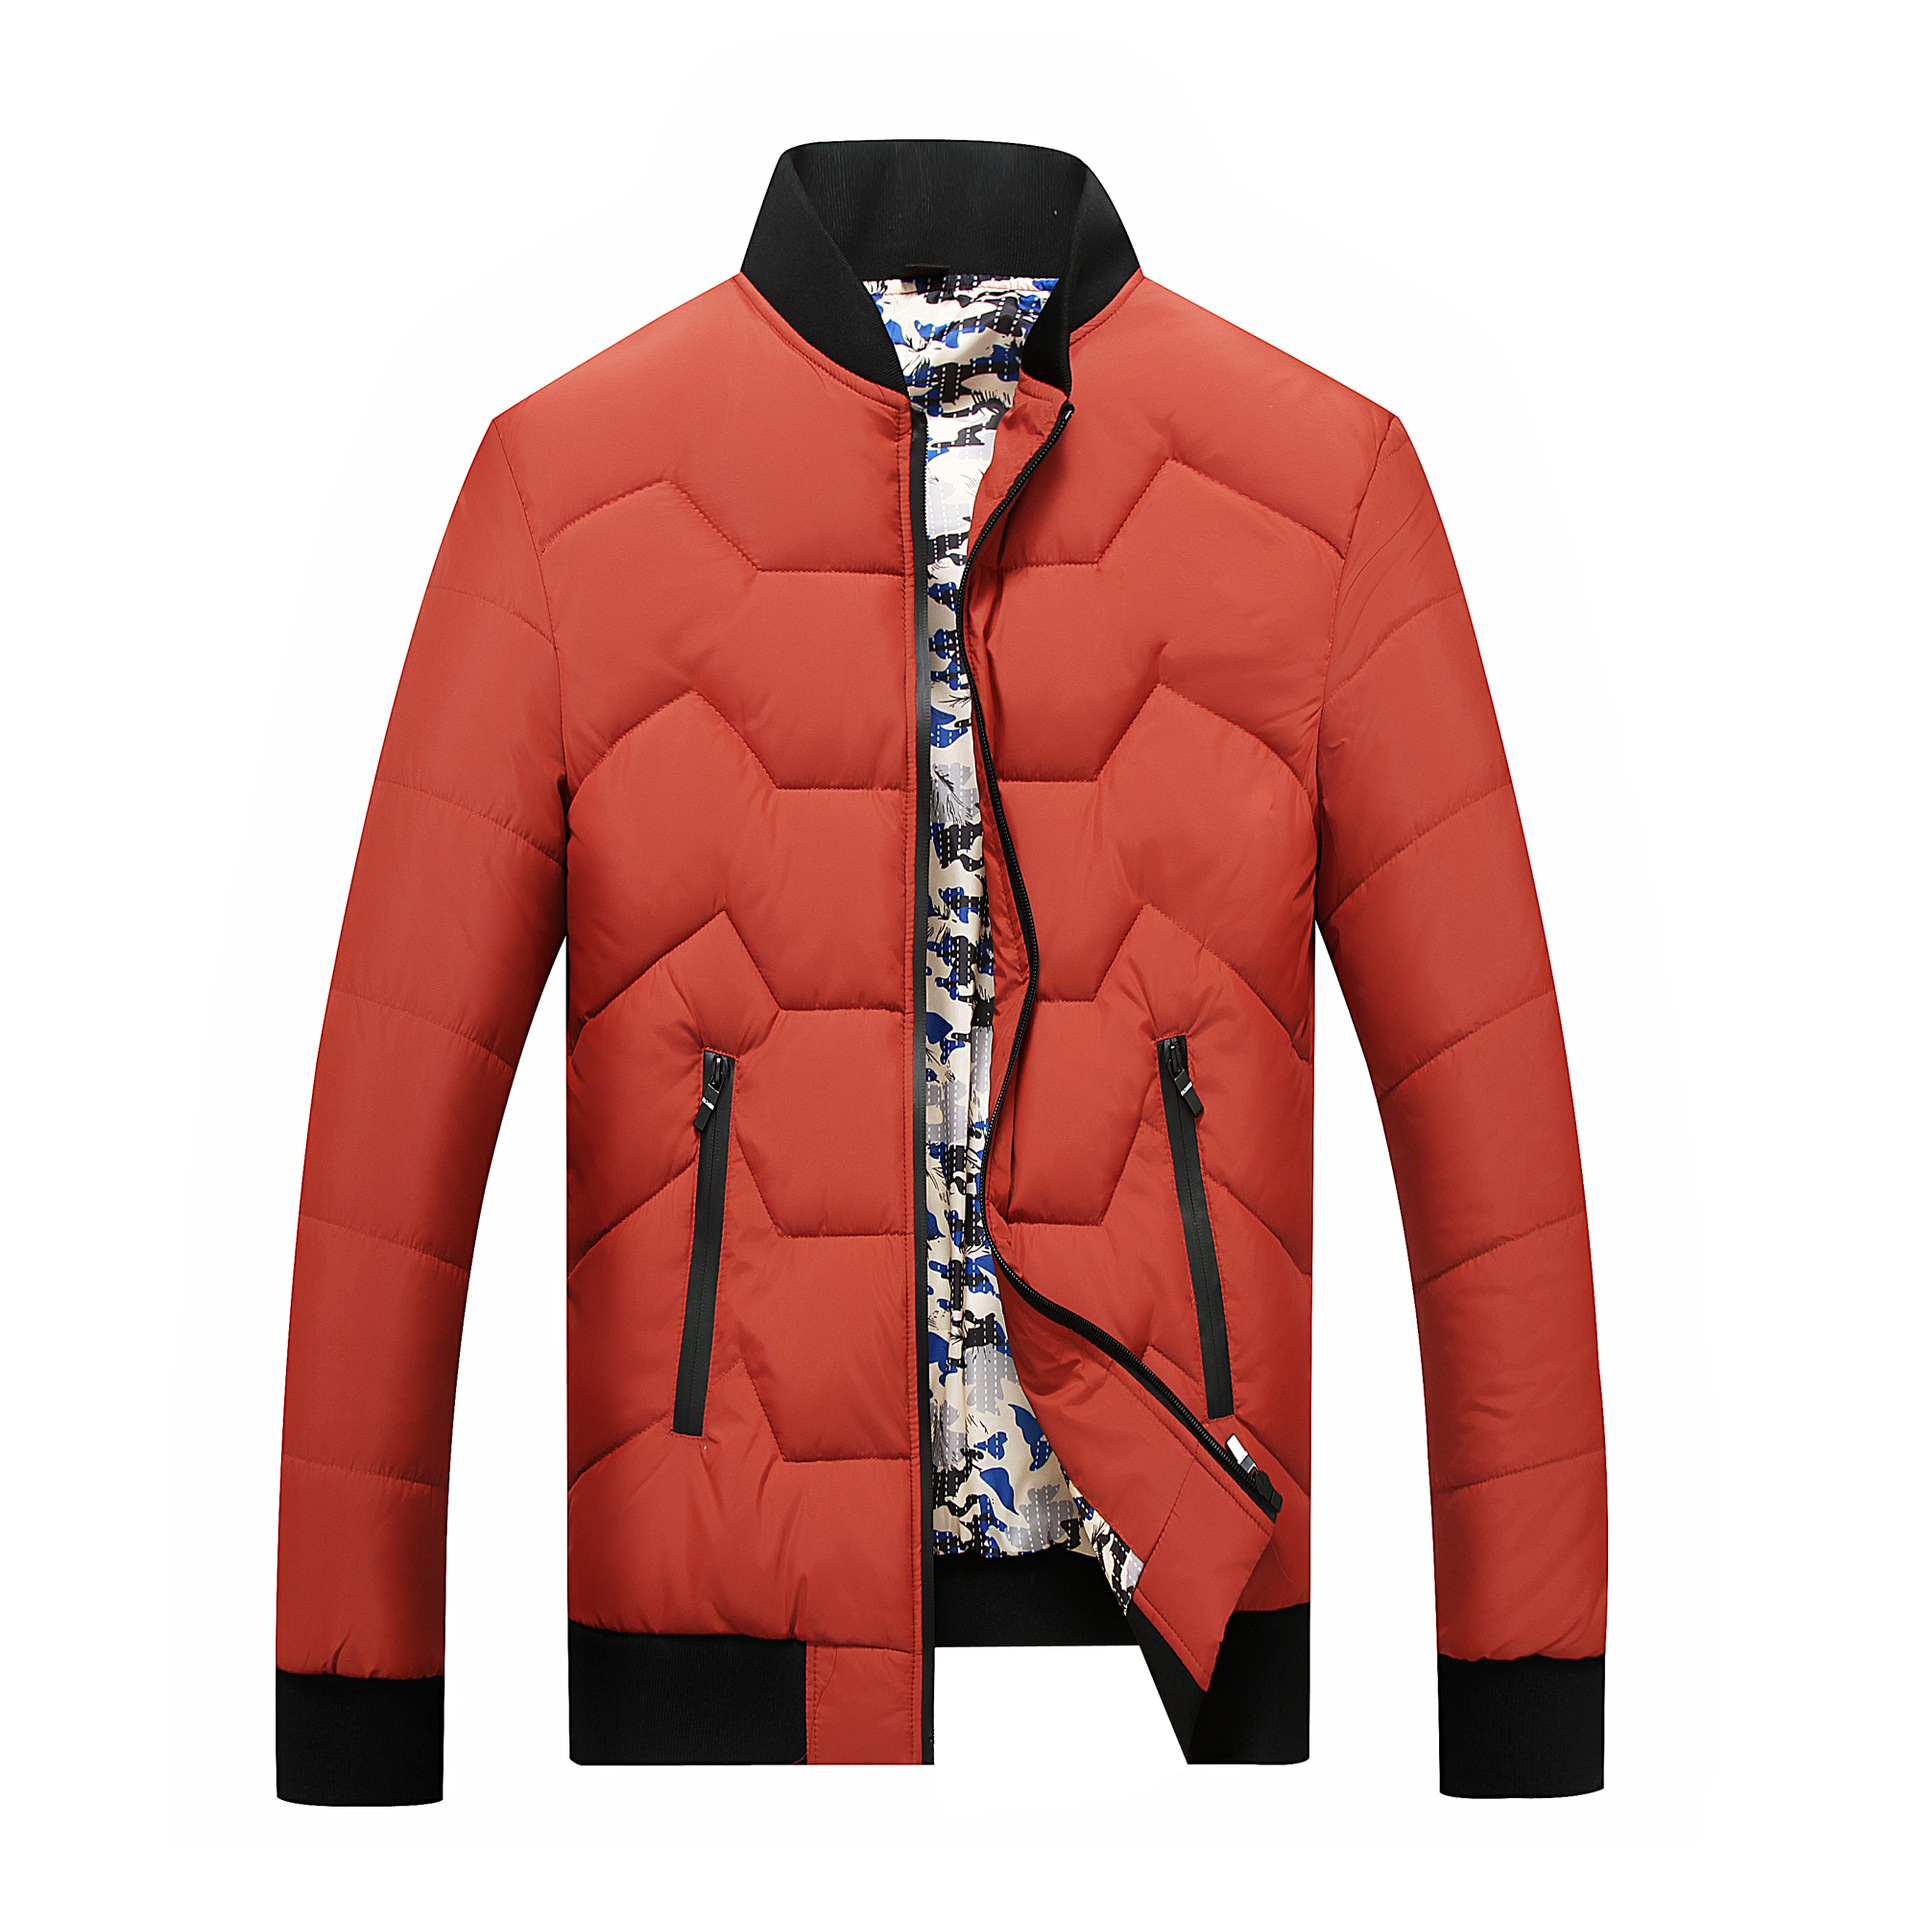 Plus Size L-8XL Mens Winter warm Jacket Thick Casual cotton clothing Windproof Parkas Coat Fashion Zipper High Quality Jackets